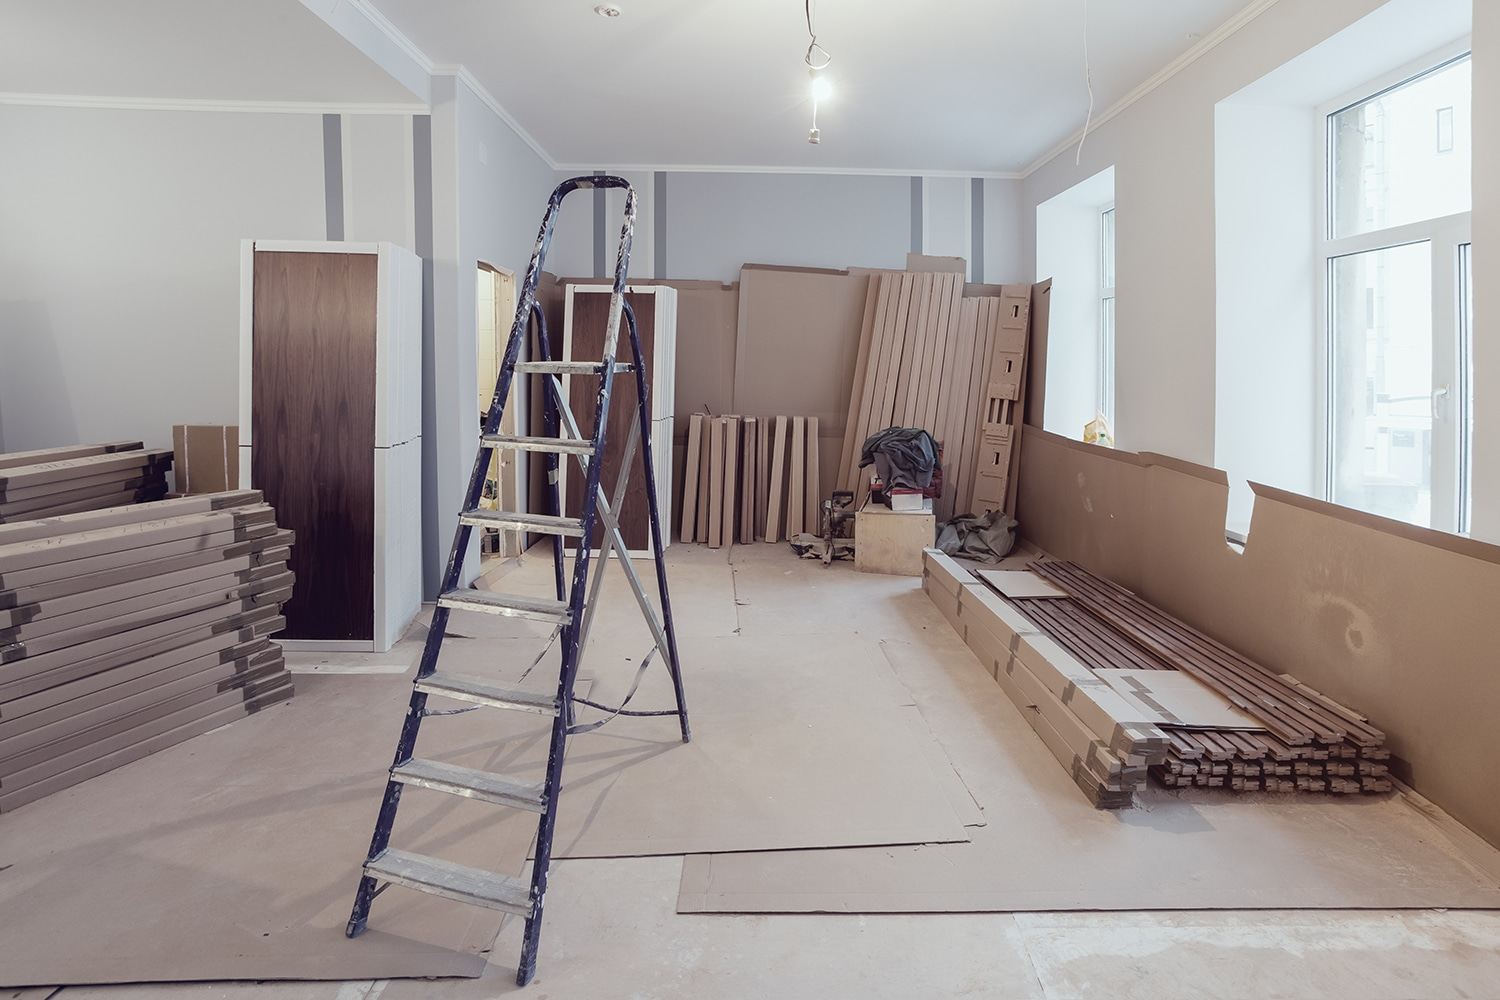 Empty apartment with construction going on.